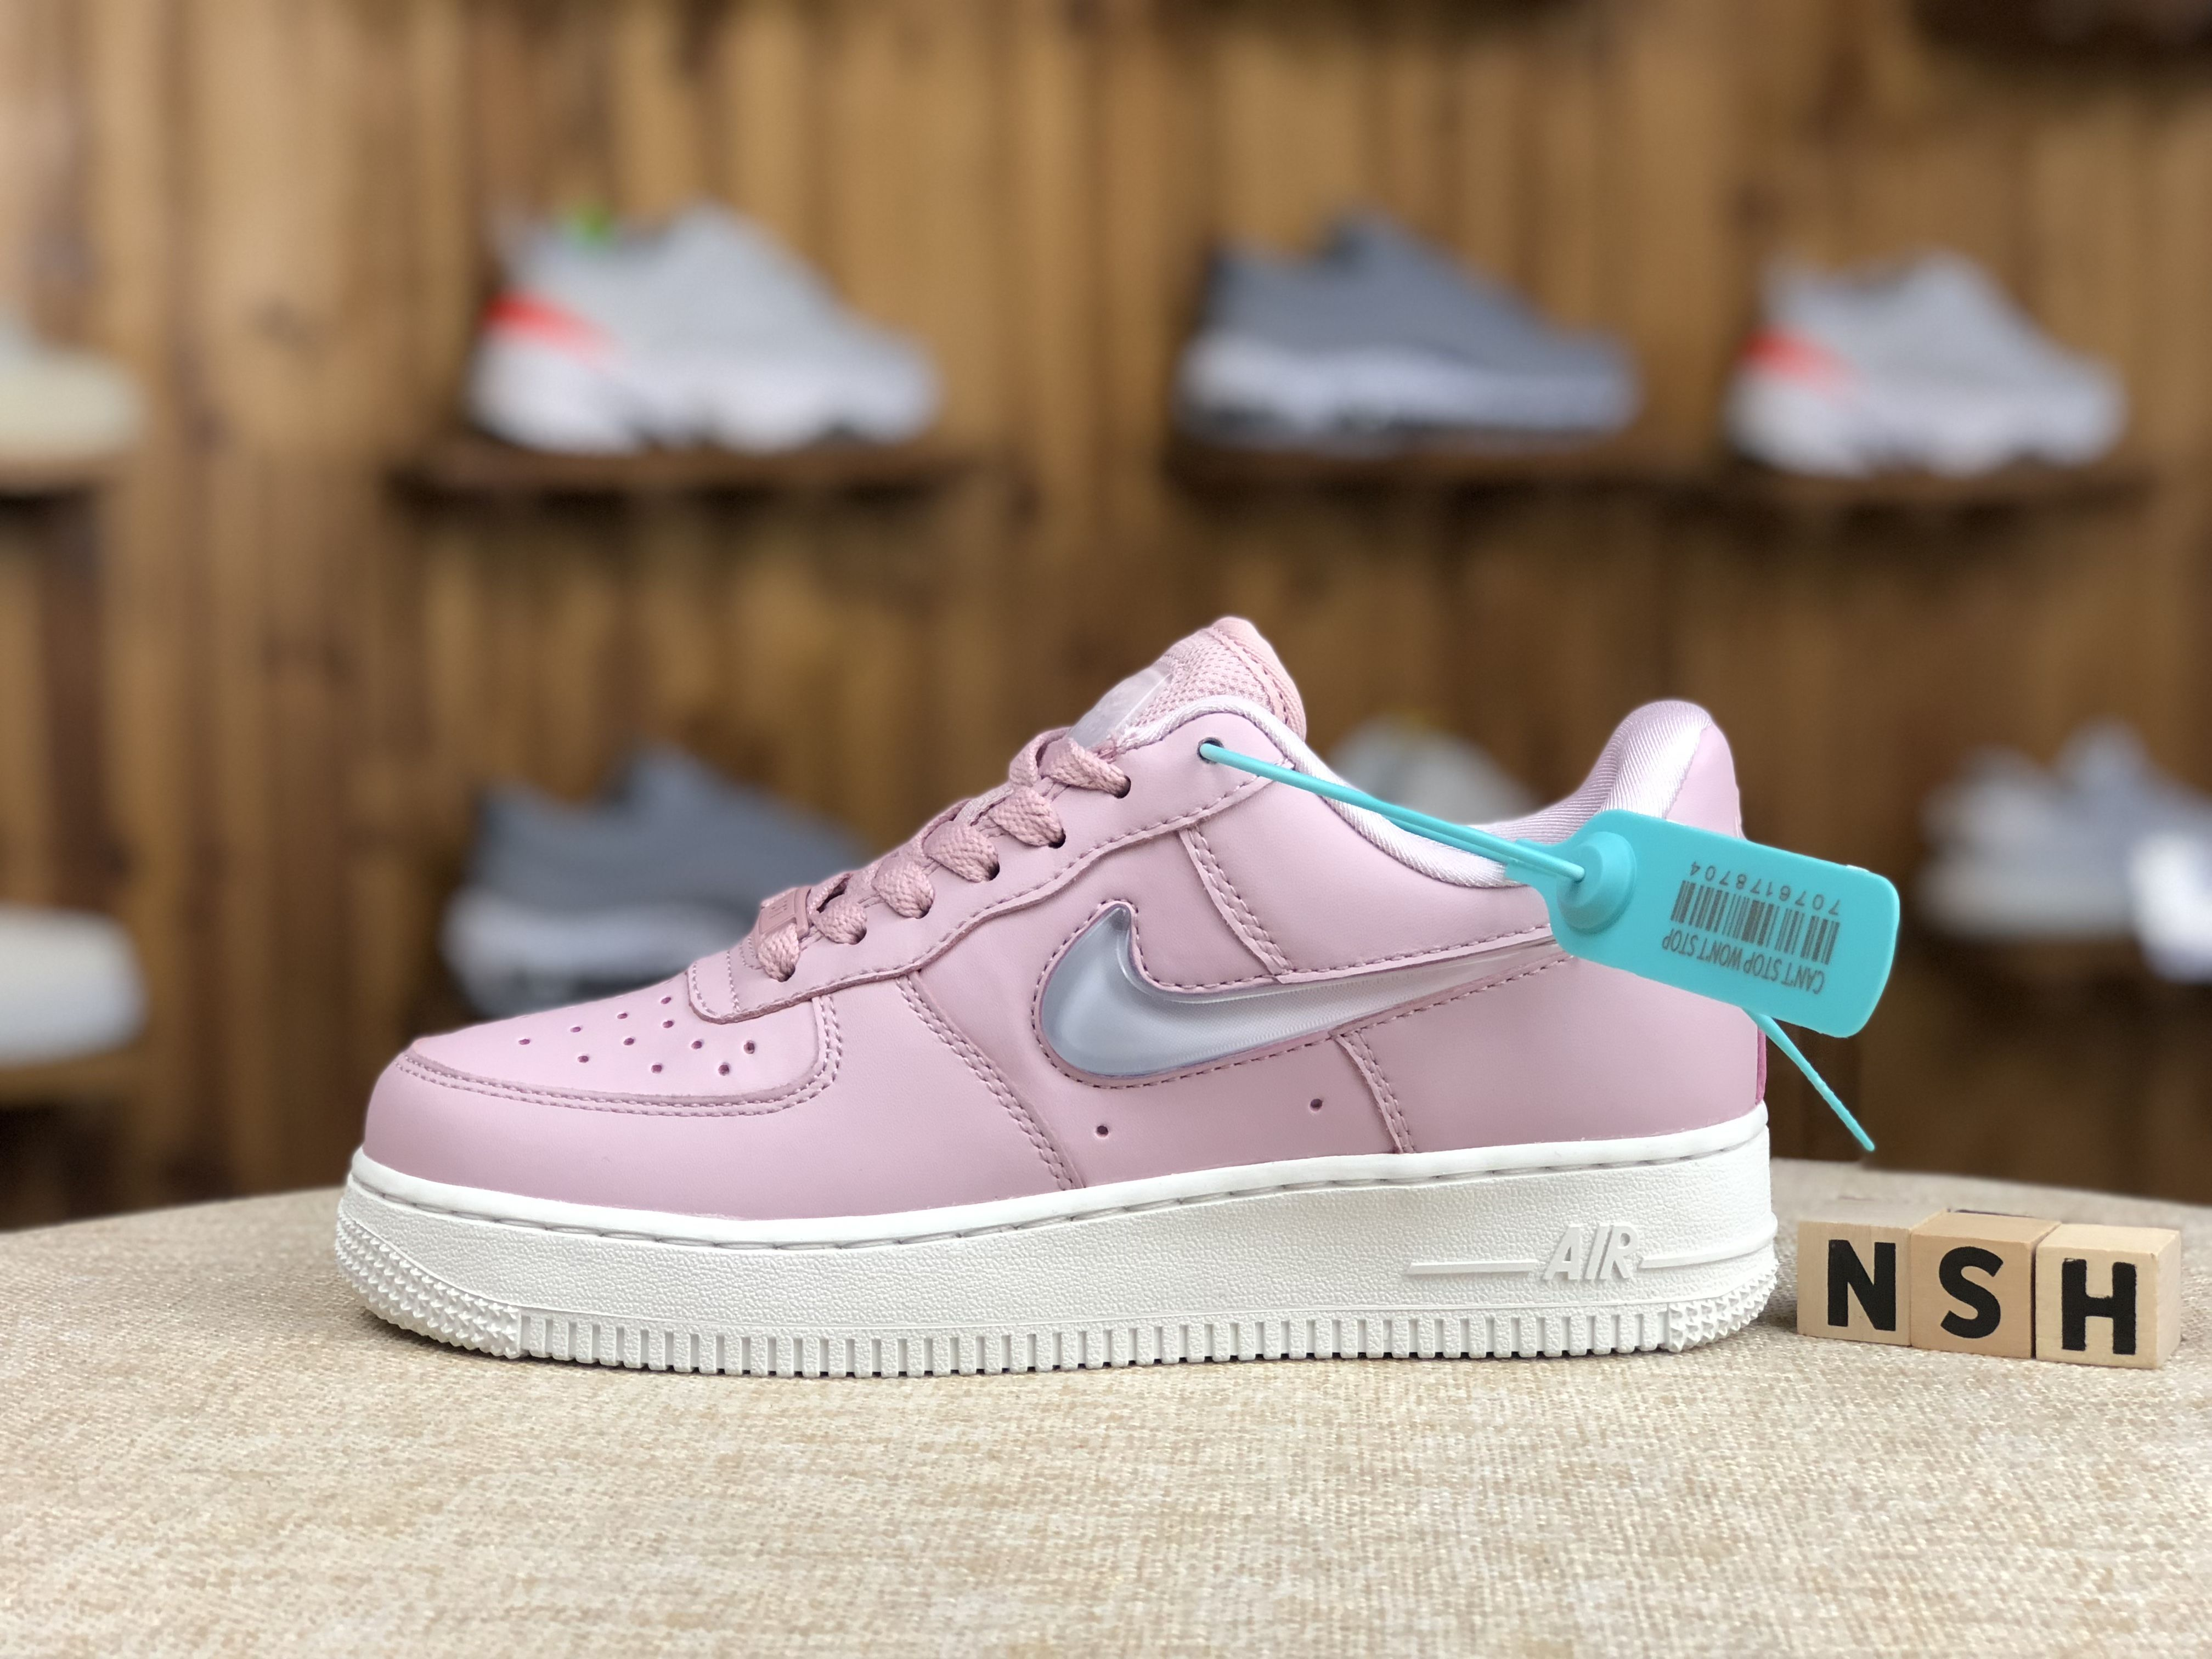 Nike Air Force 1 Low White Pink Shoes Best Price AH6827 500